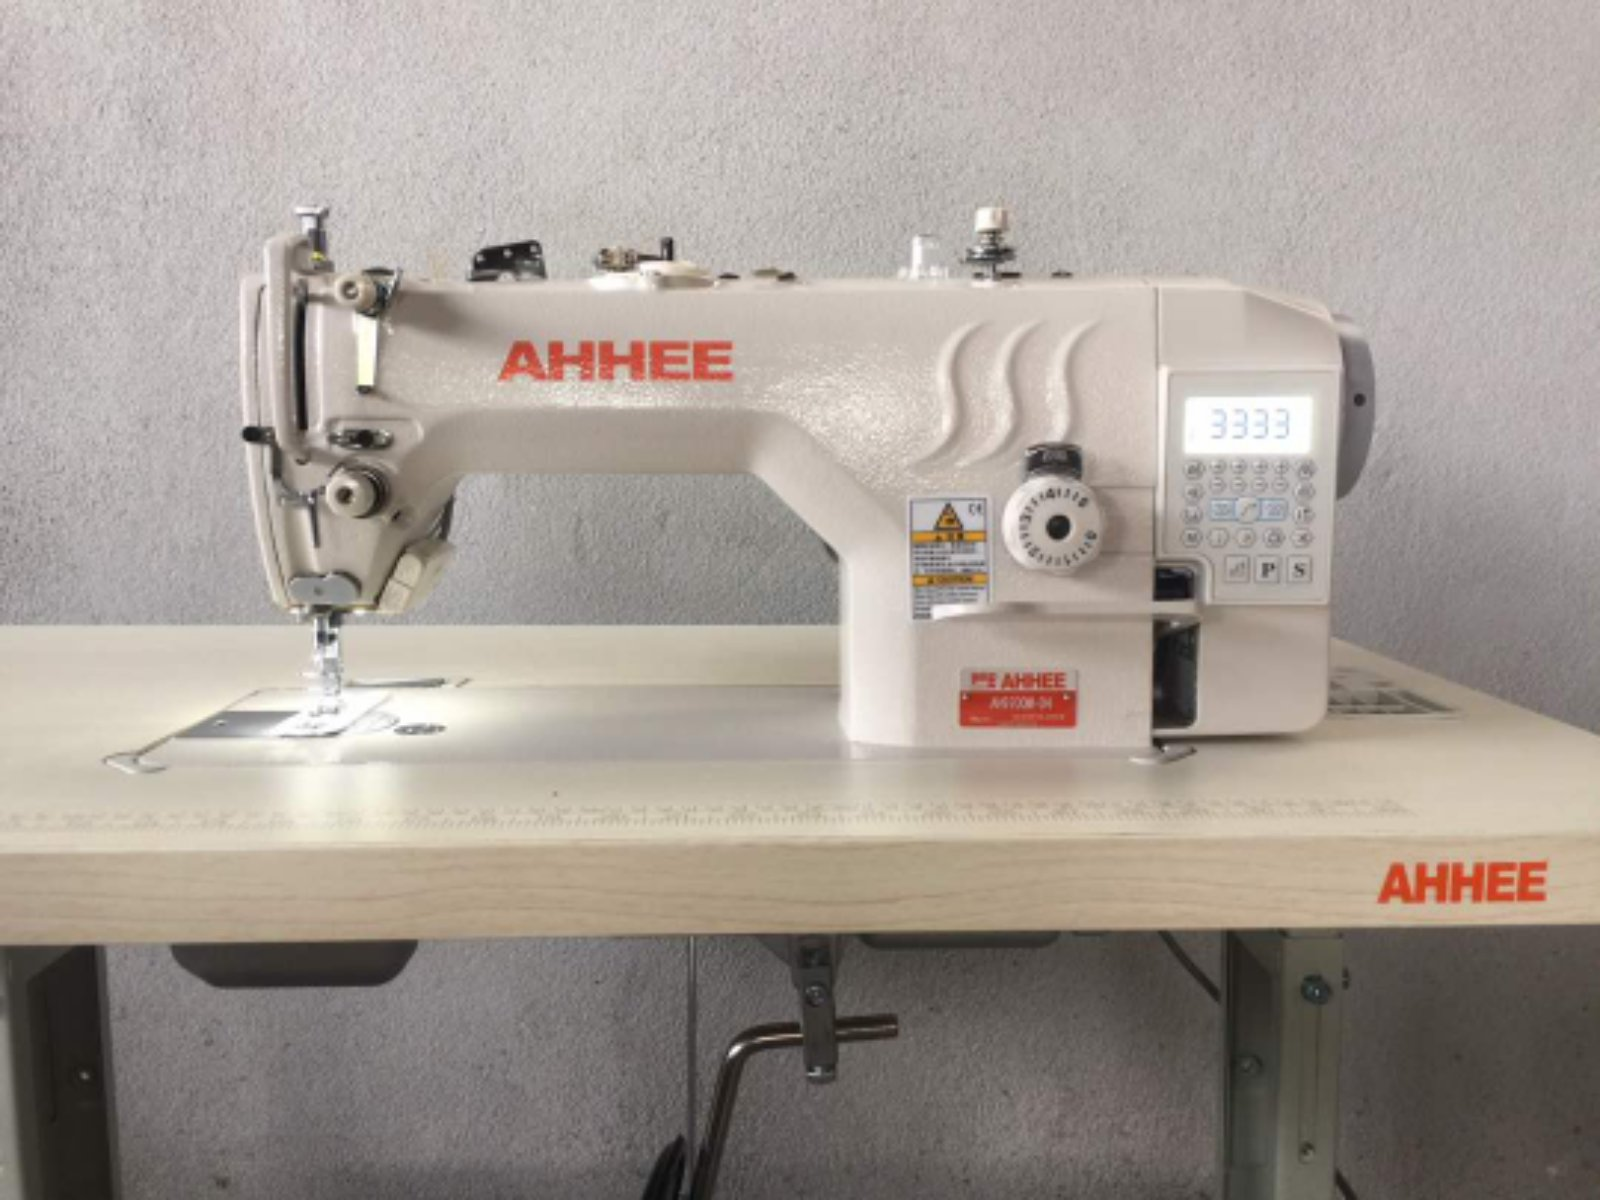 AHHEE Hi Speed Automatik Sewing Machine